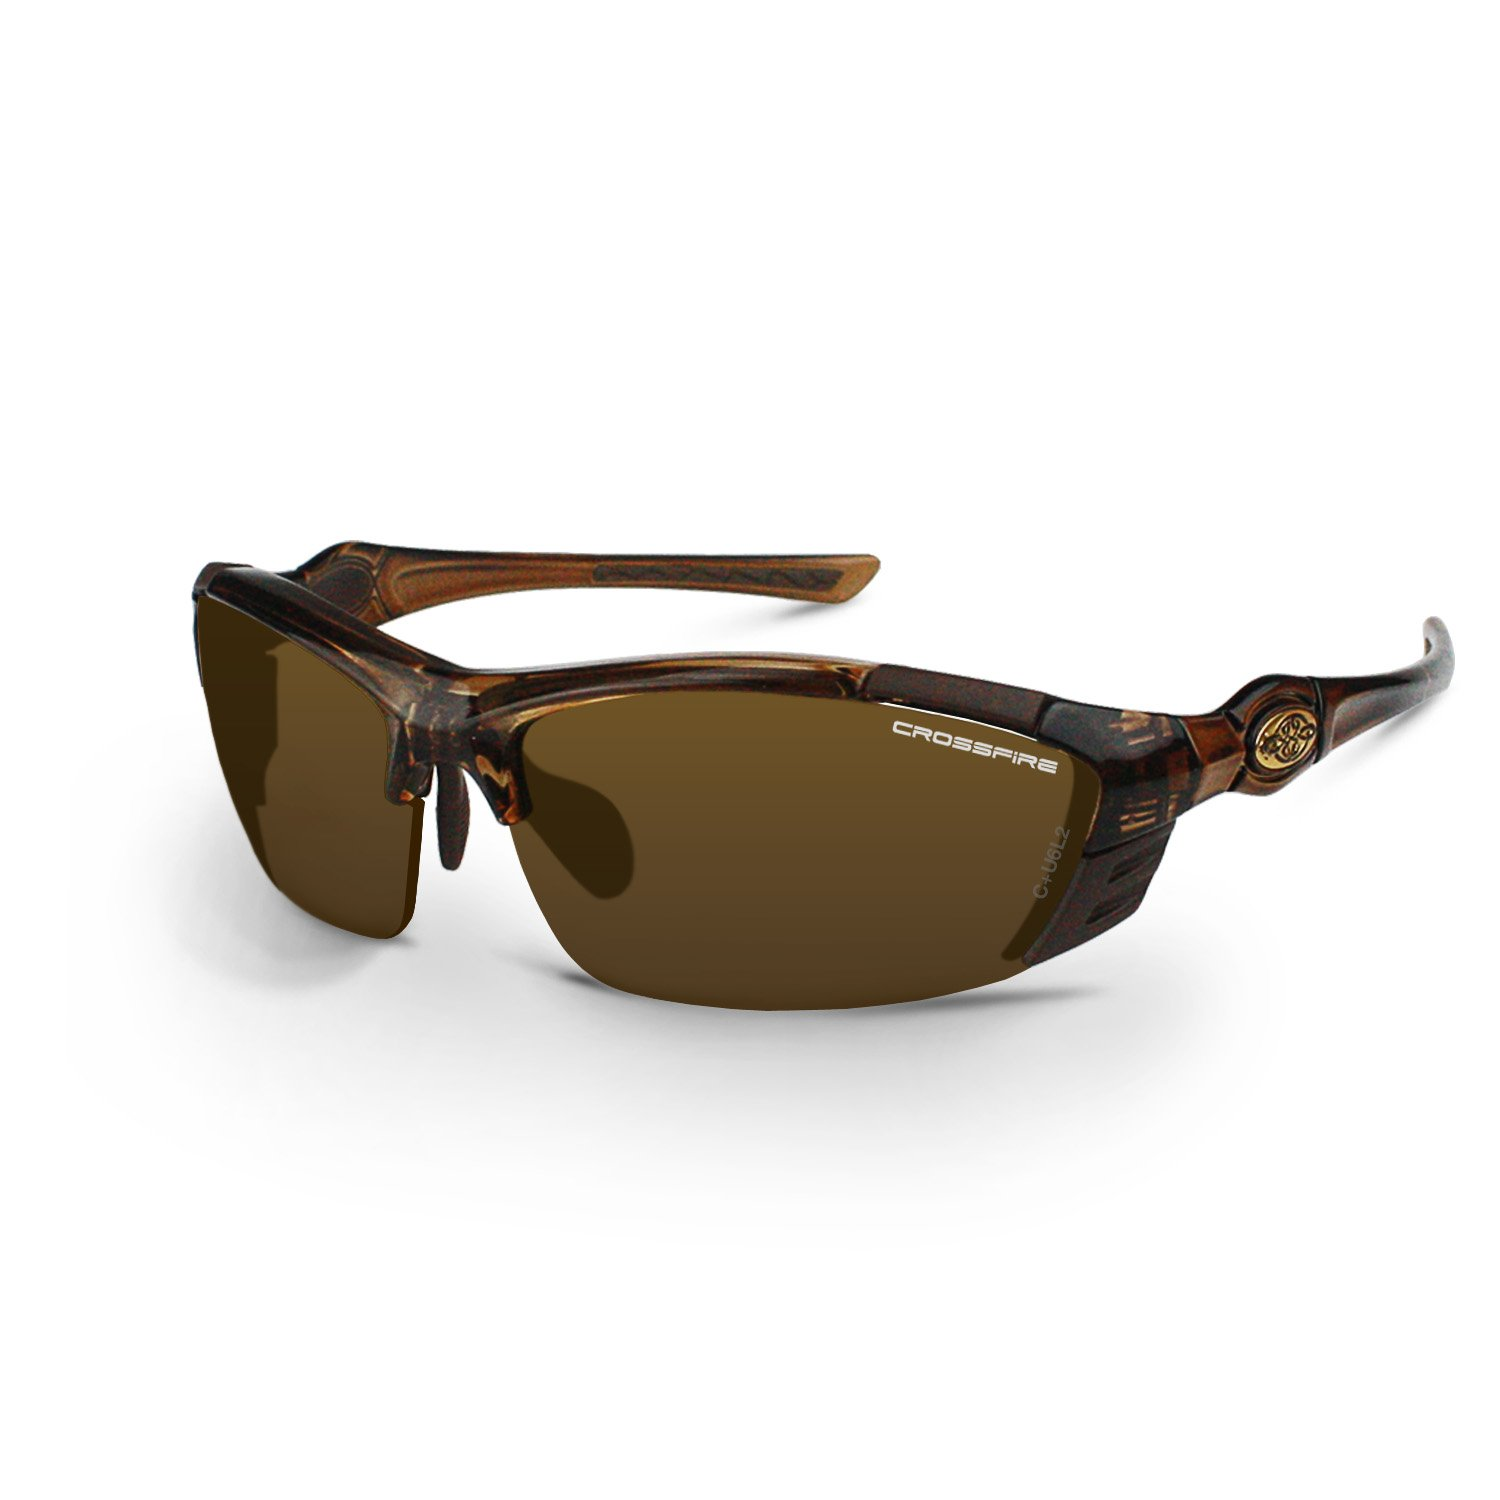 Crossfire Eyewear 361132 TL11 Safety Glasses with Brown Frame and Bronze Lens by Crossfire Eyewear